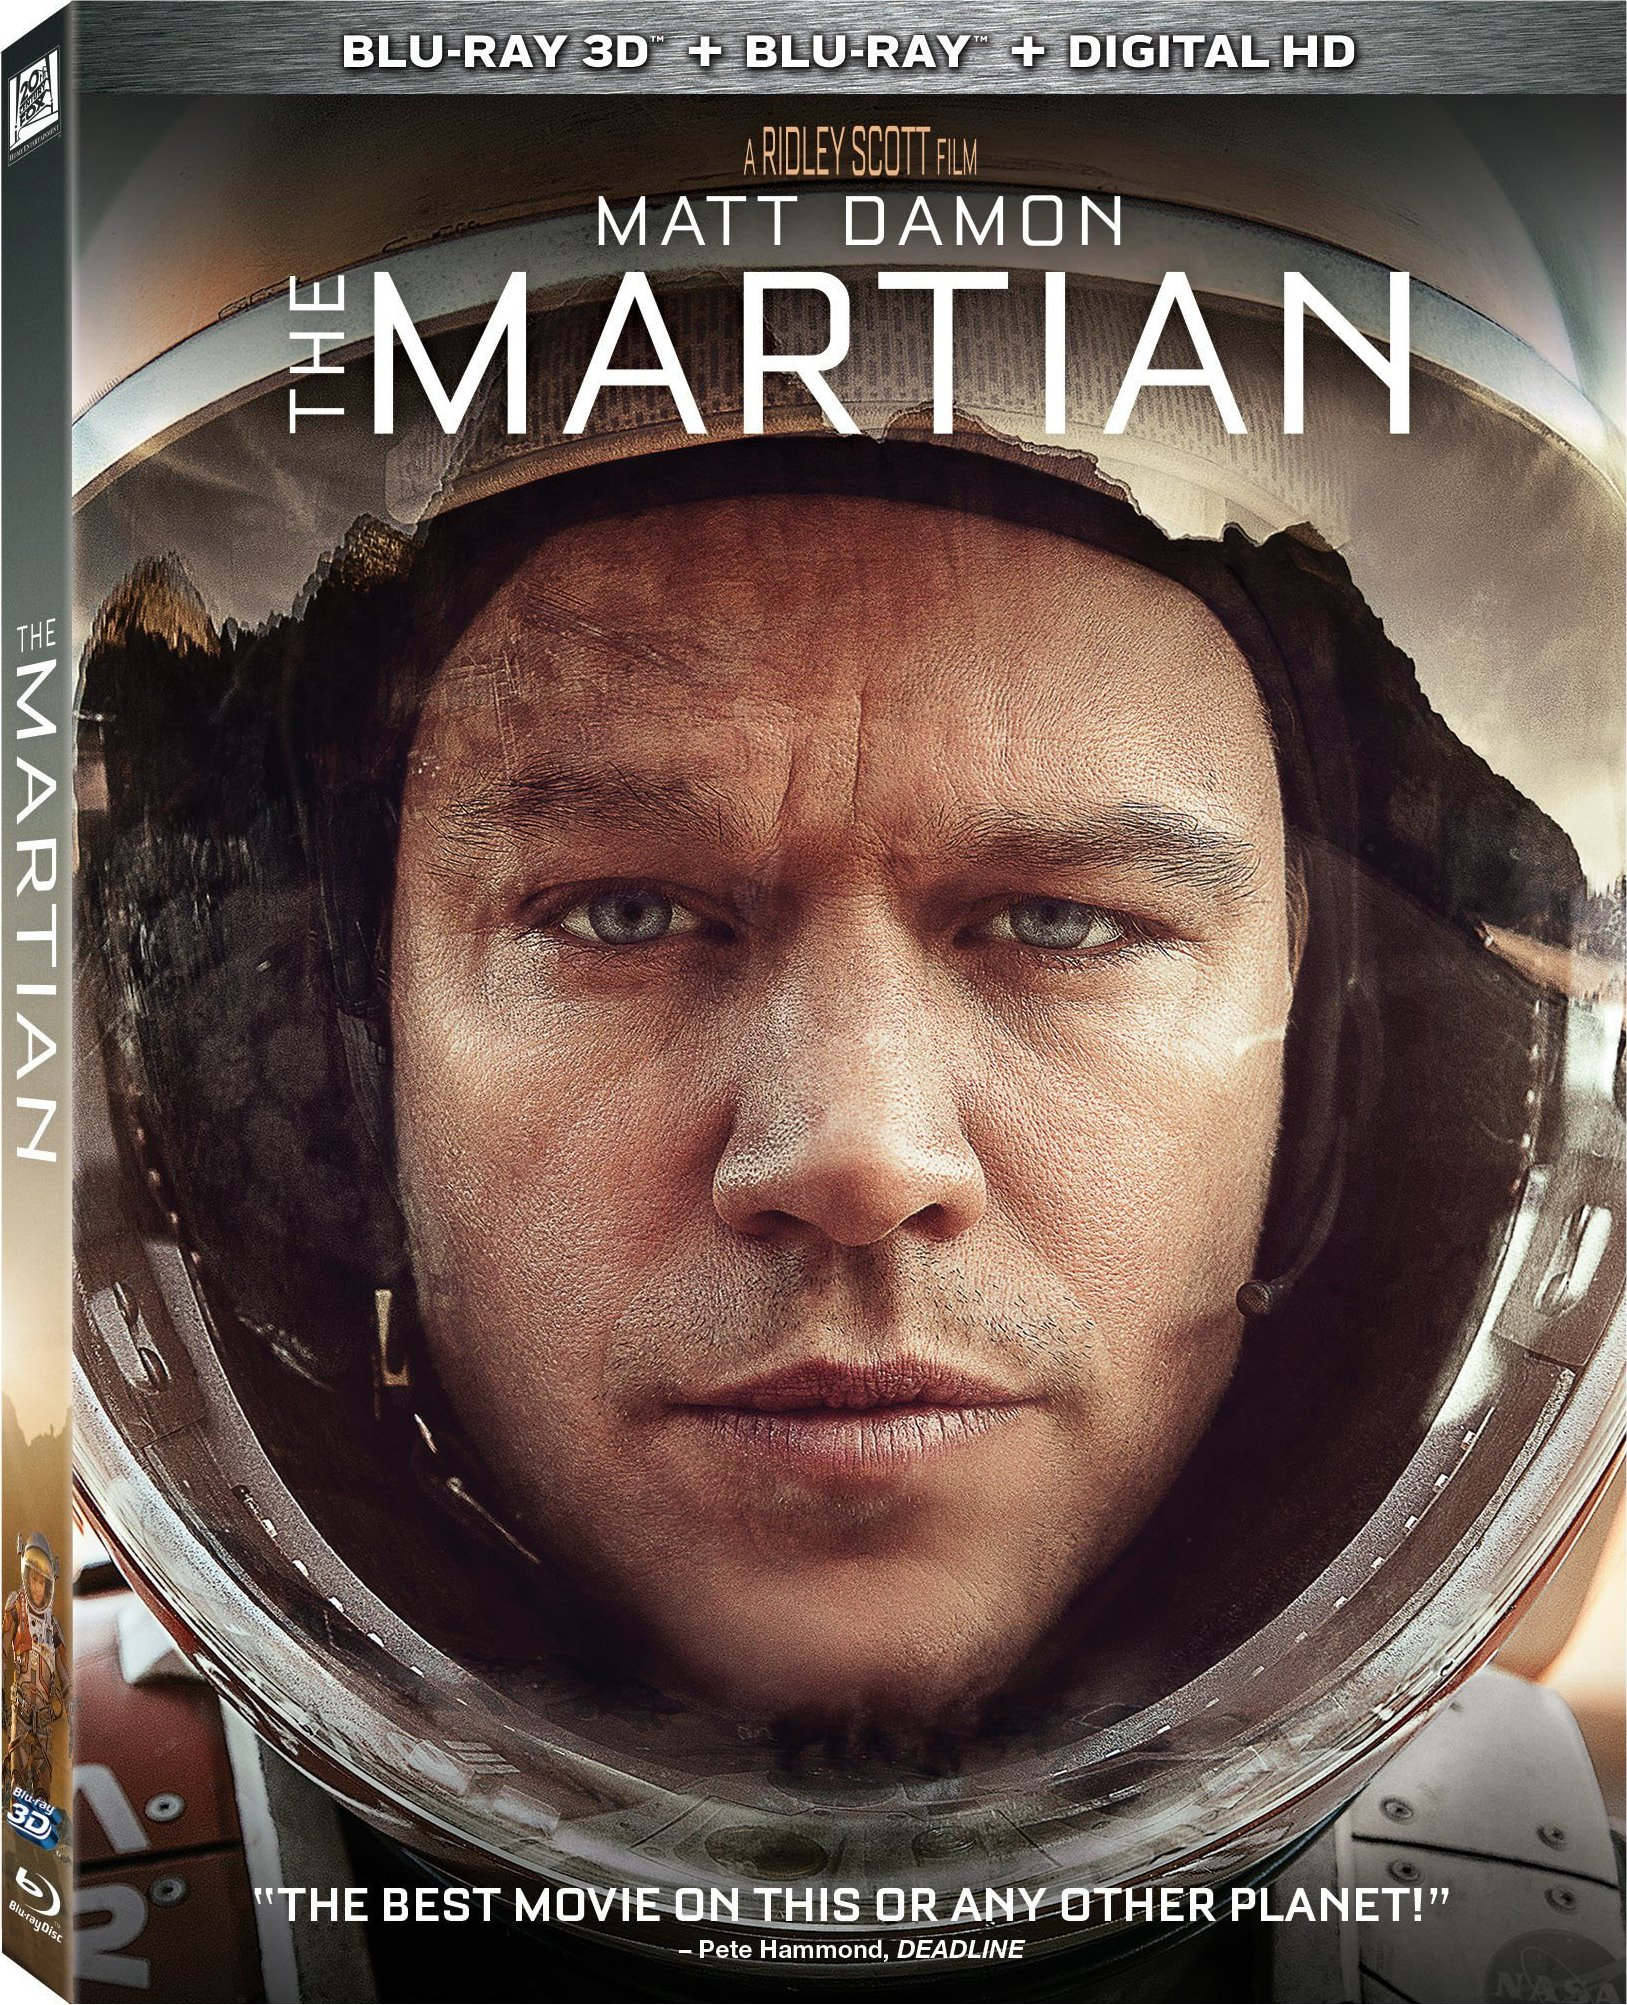 The Martian 3D (2015) Blu-ray